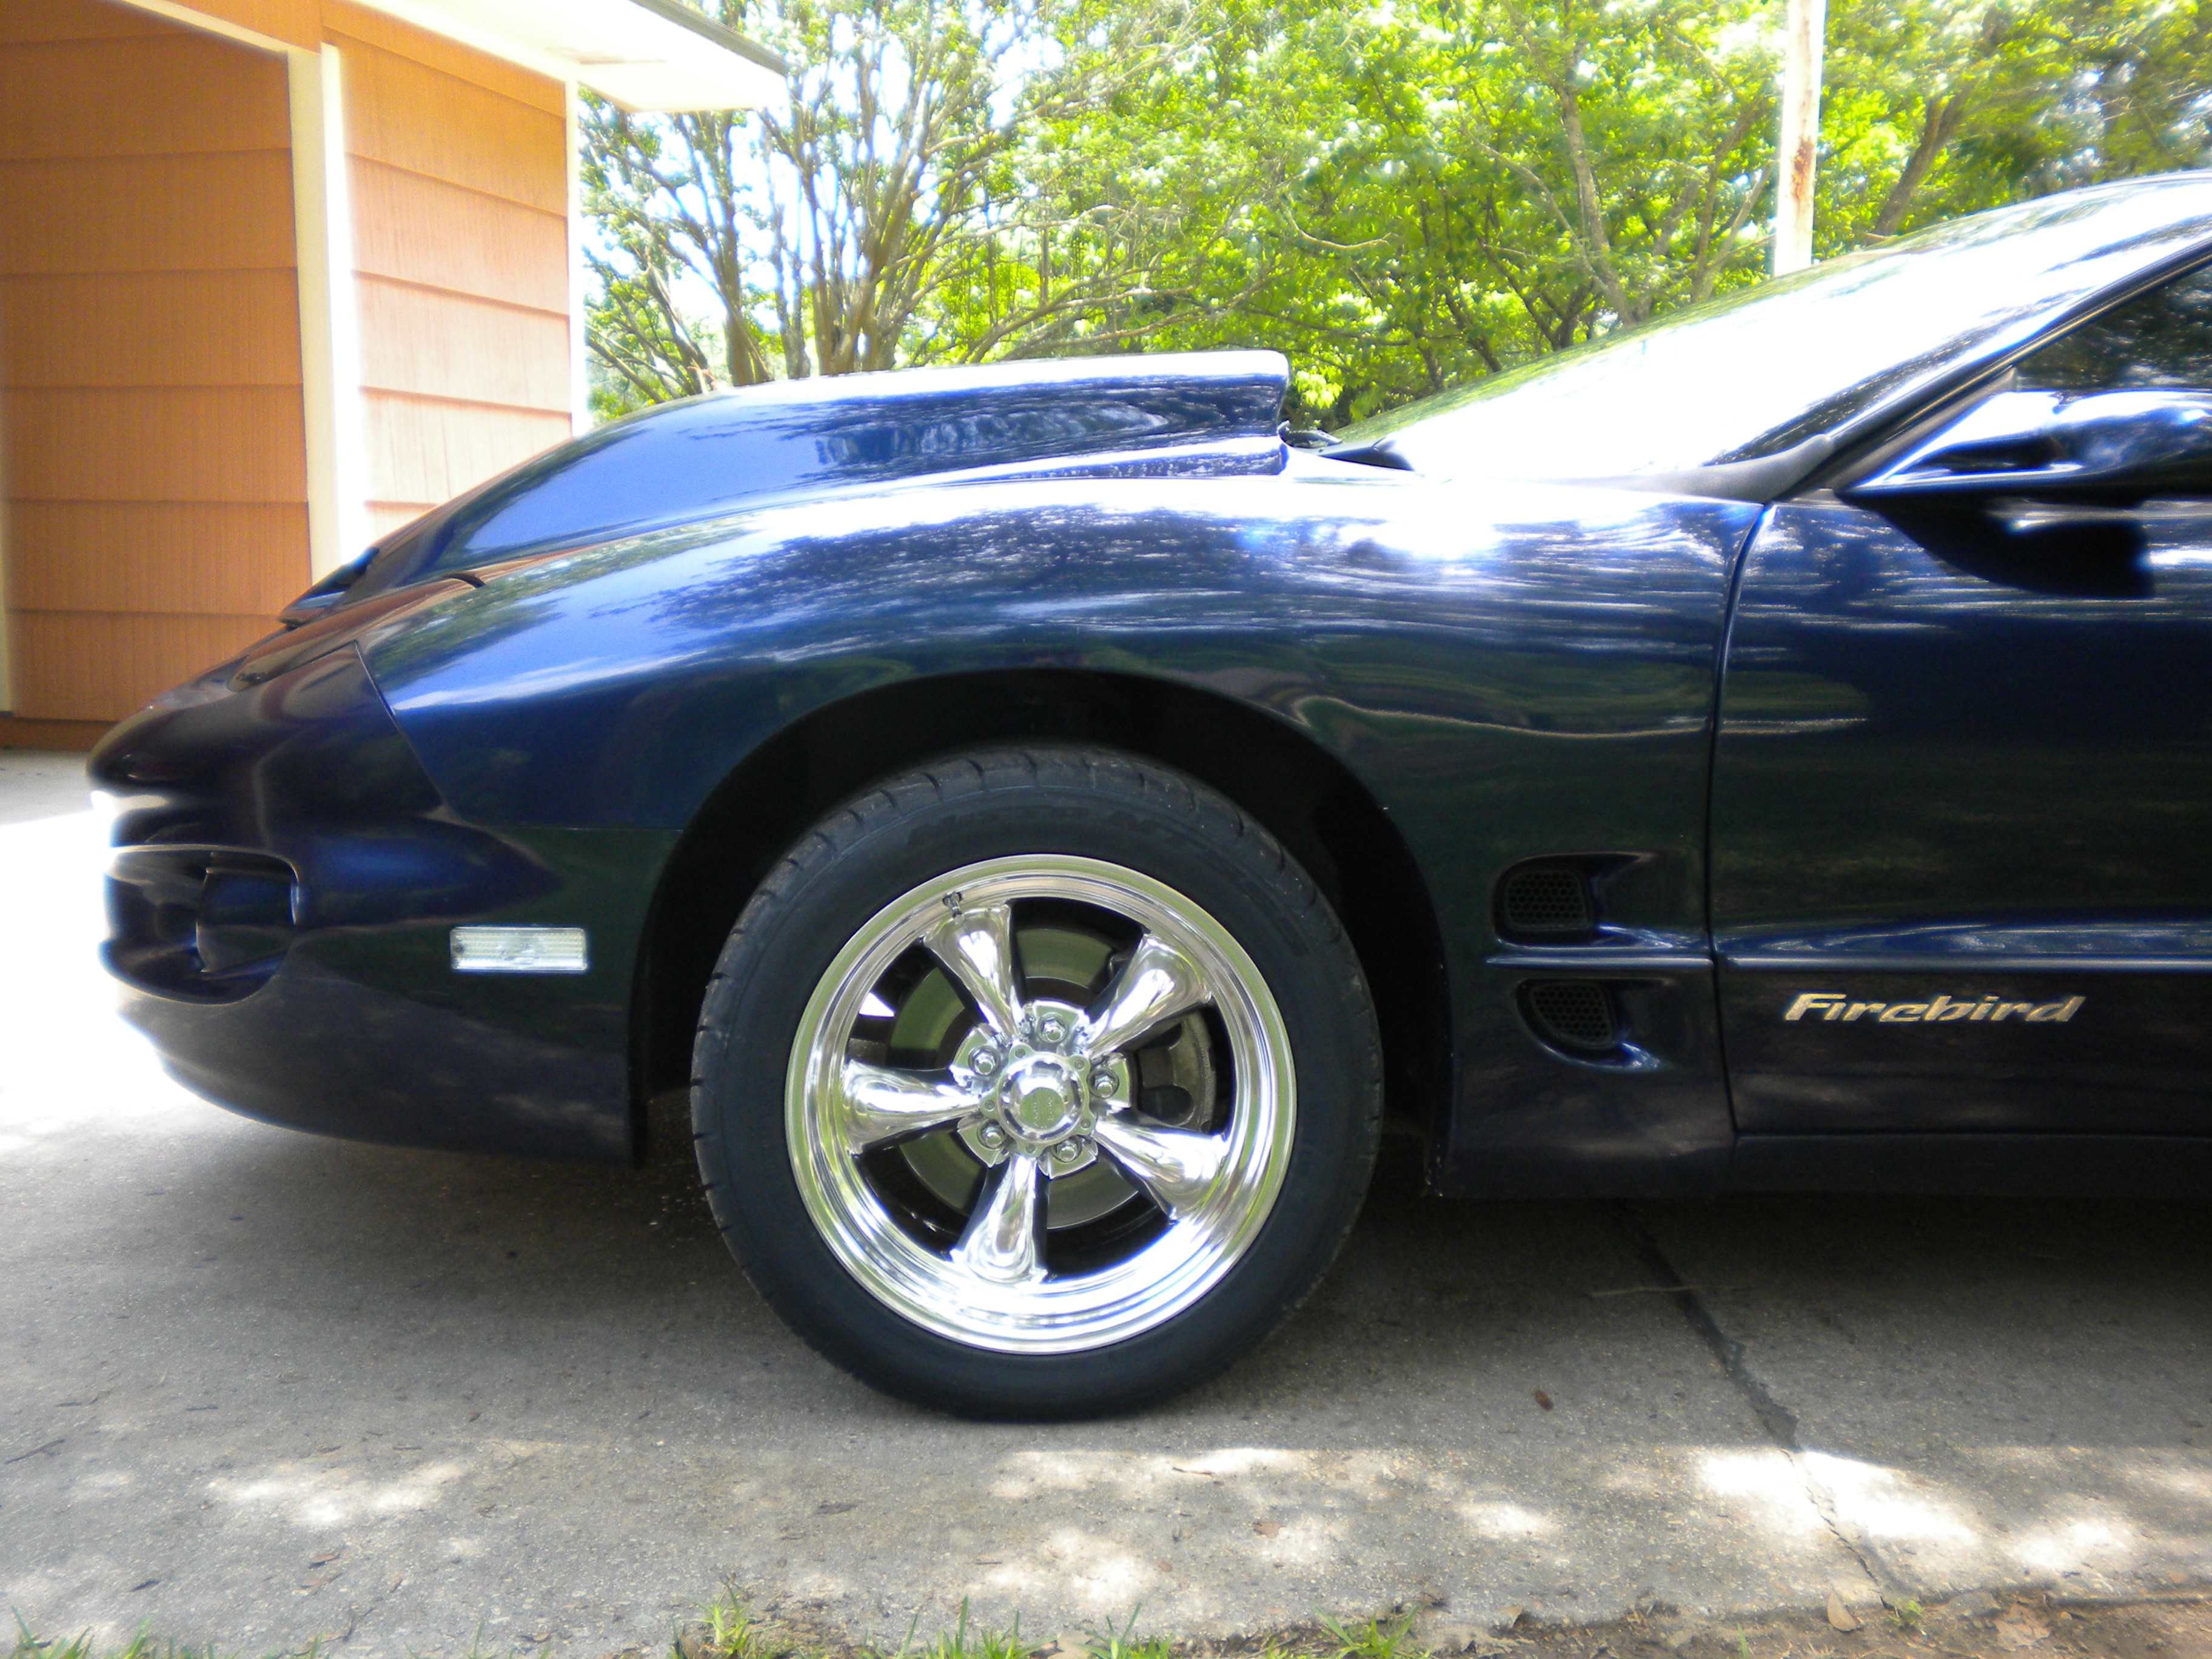 firebirdmuscle 1998 Pontiac Firebird 13803503